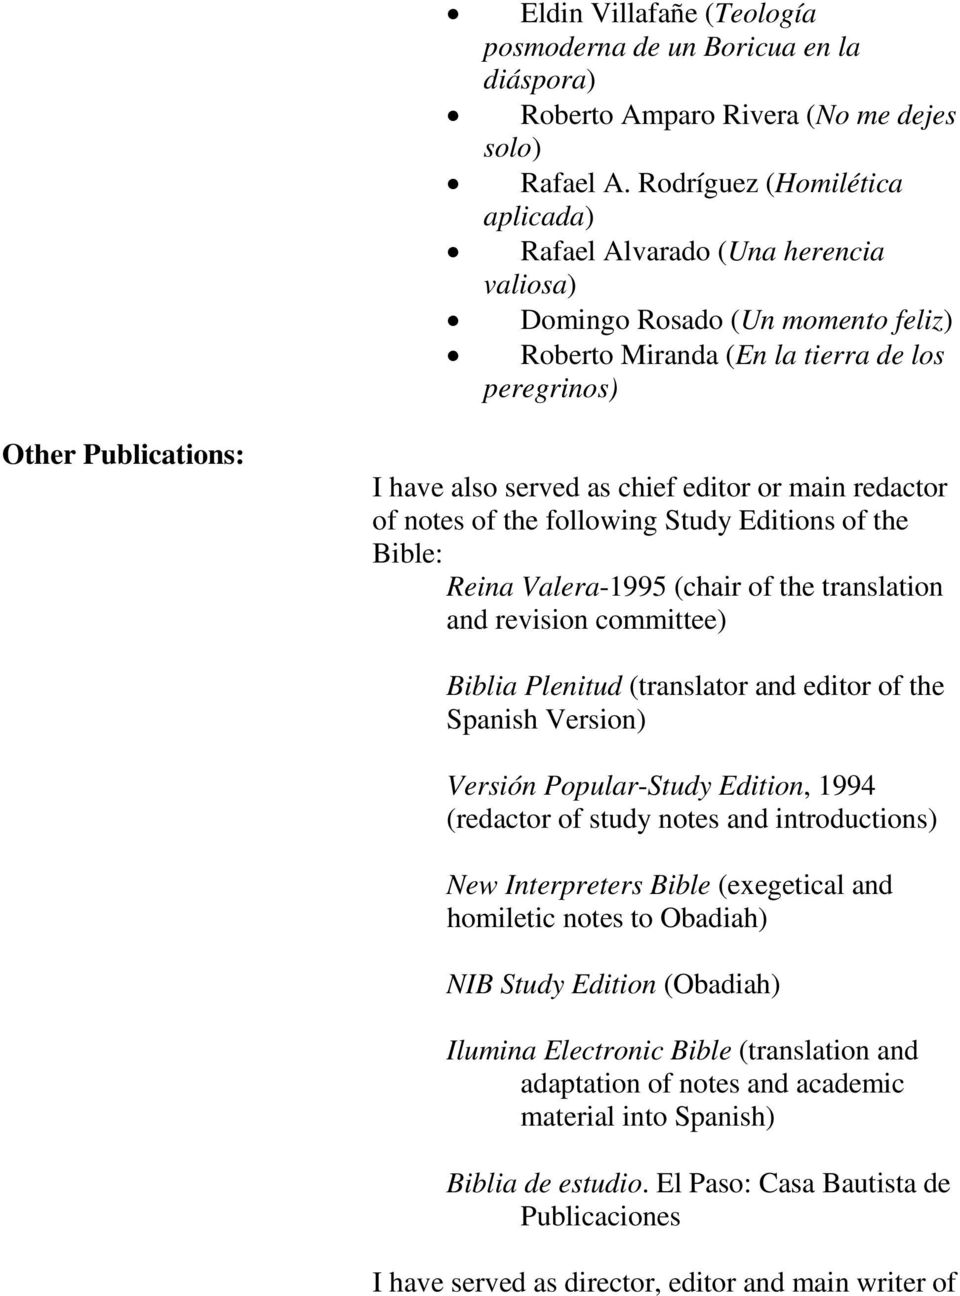 chief editor or main redactor of notes of the following Study Editions of the Bible: Reina Valera-1995 (chair of the translation and revision committee) Biblia Plenitud (translator and editor of the